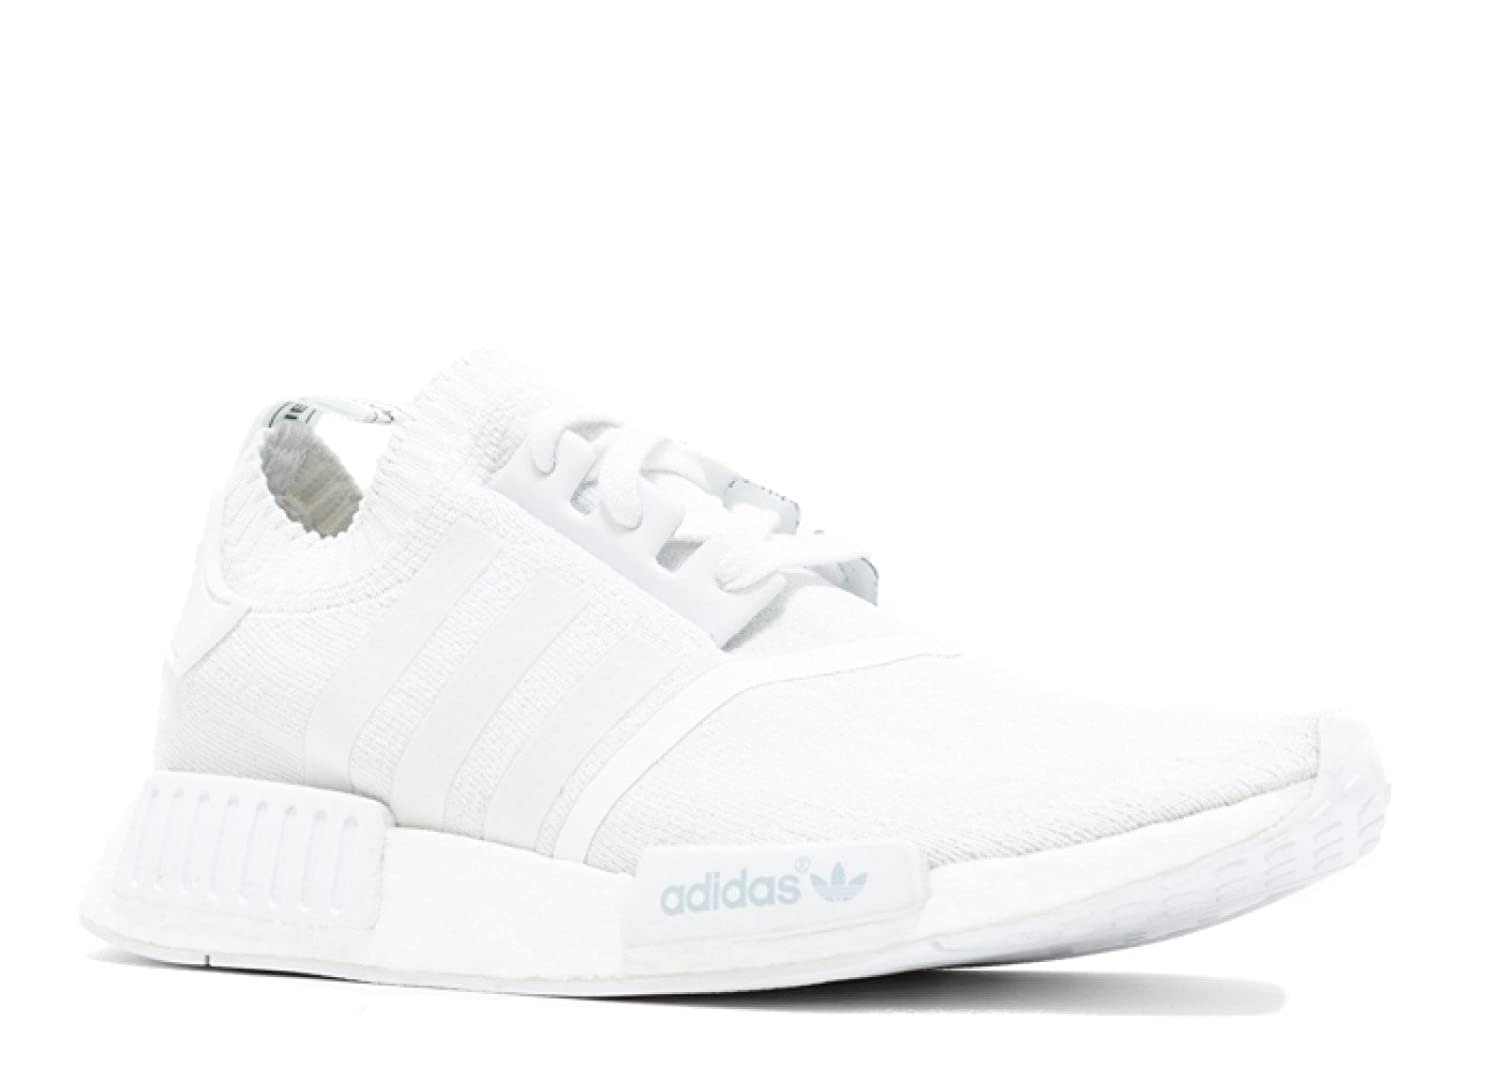 buy popular 98824 44a4b Amazon.com | adidas Mens NMD Runner PK White Size 13 | Running